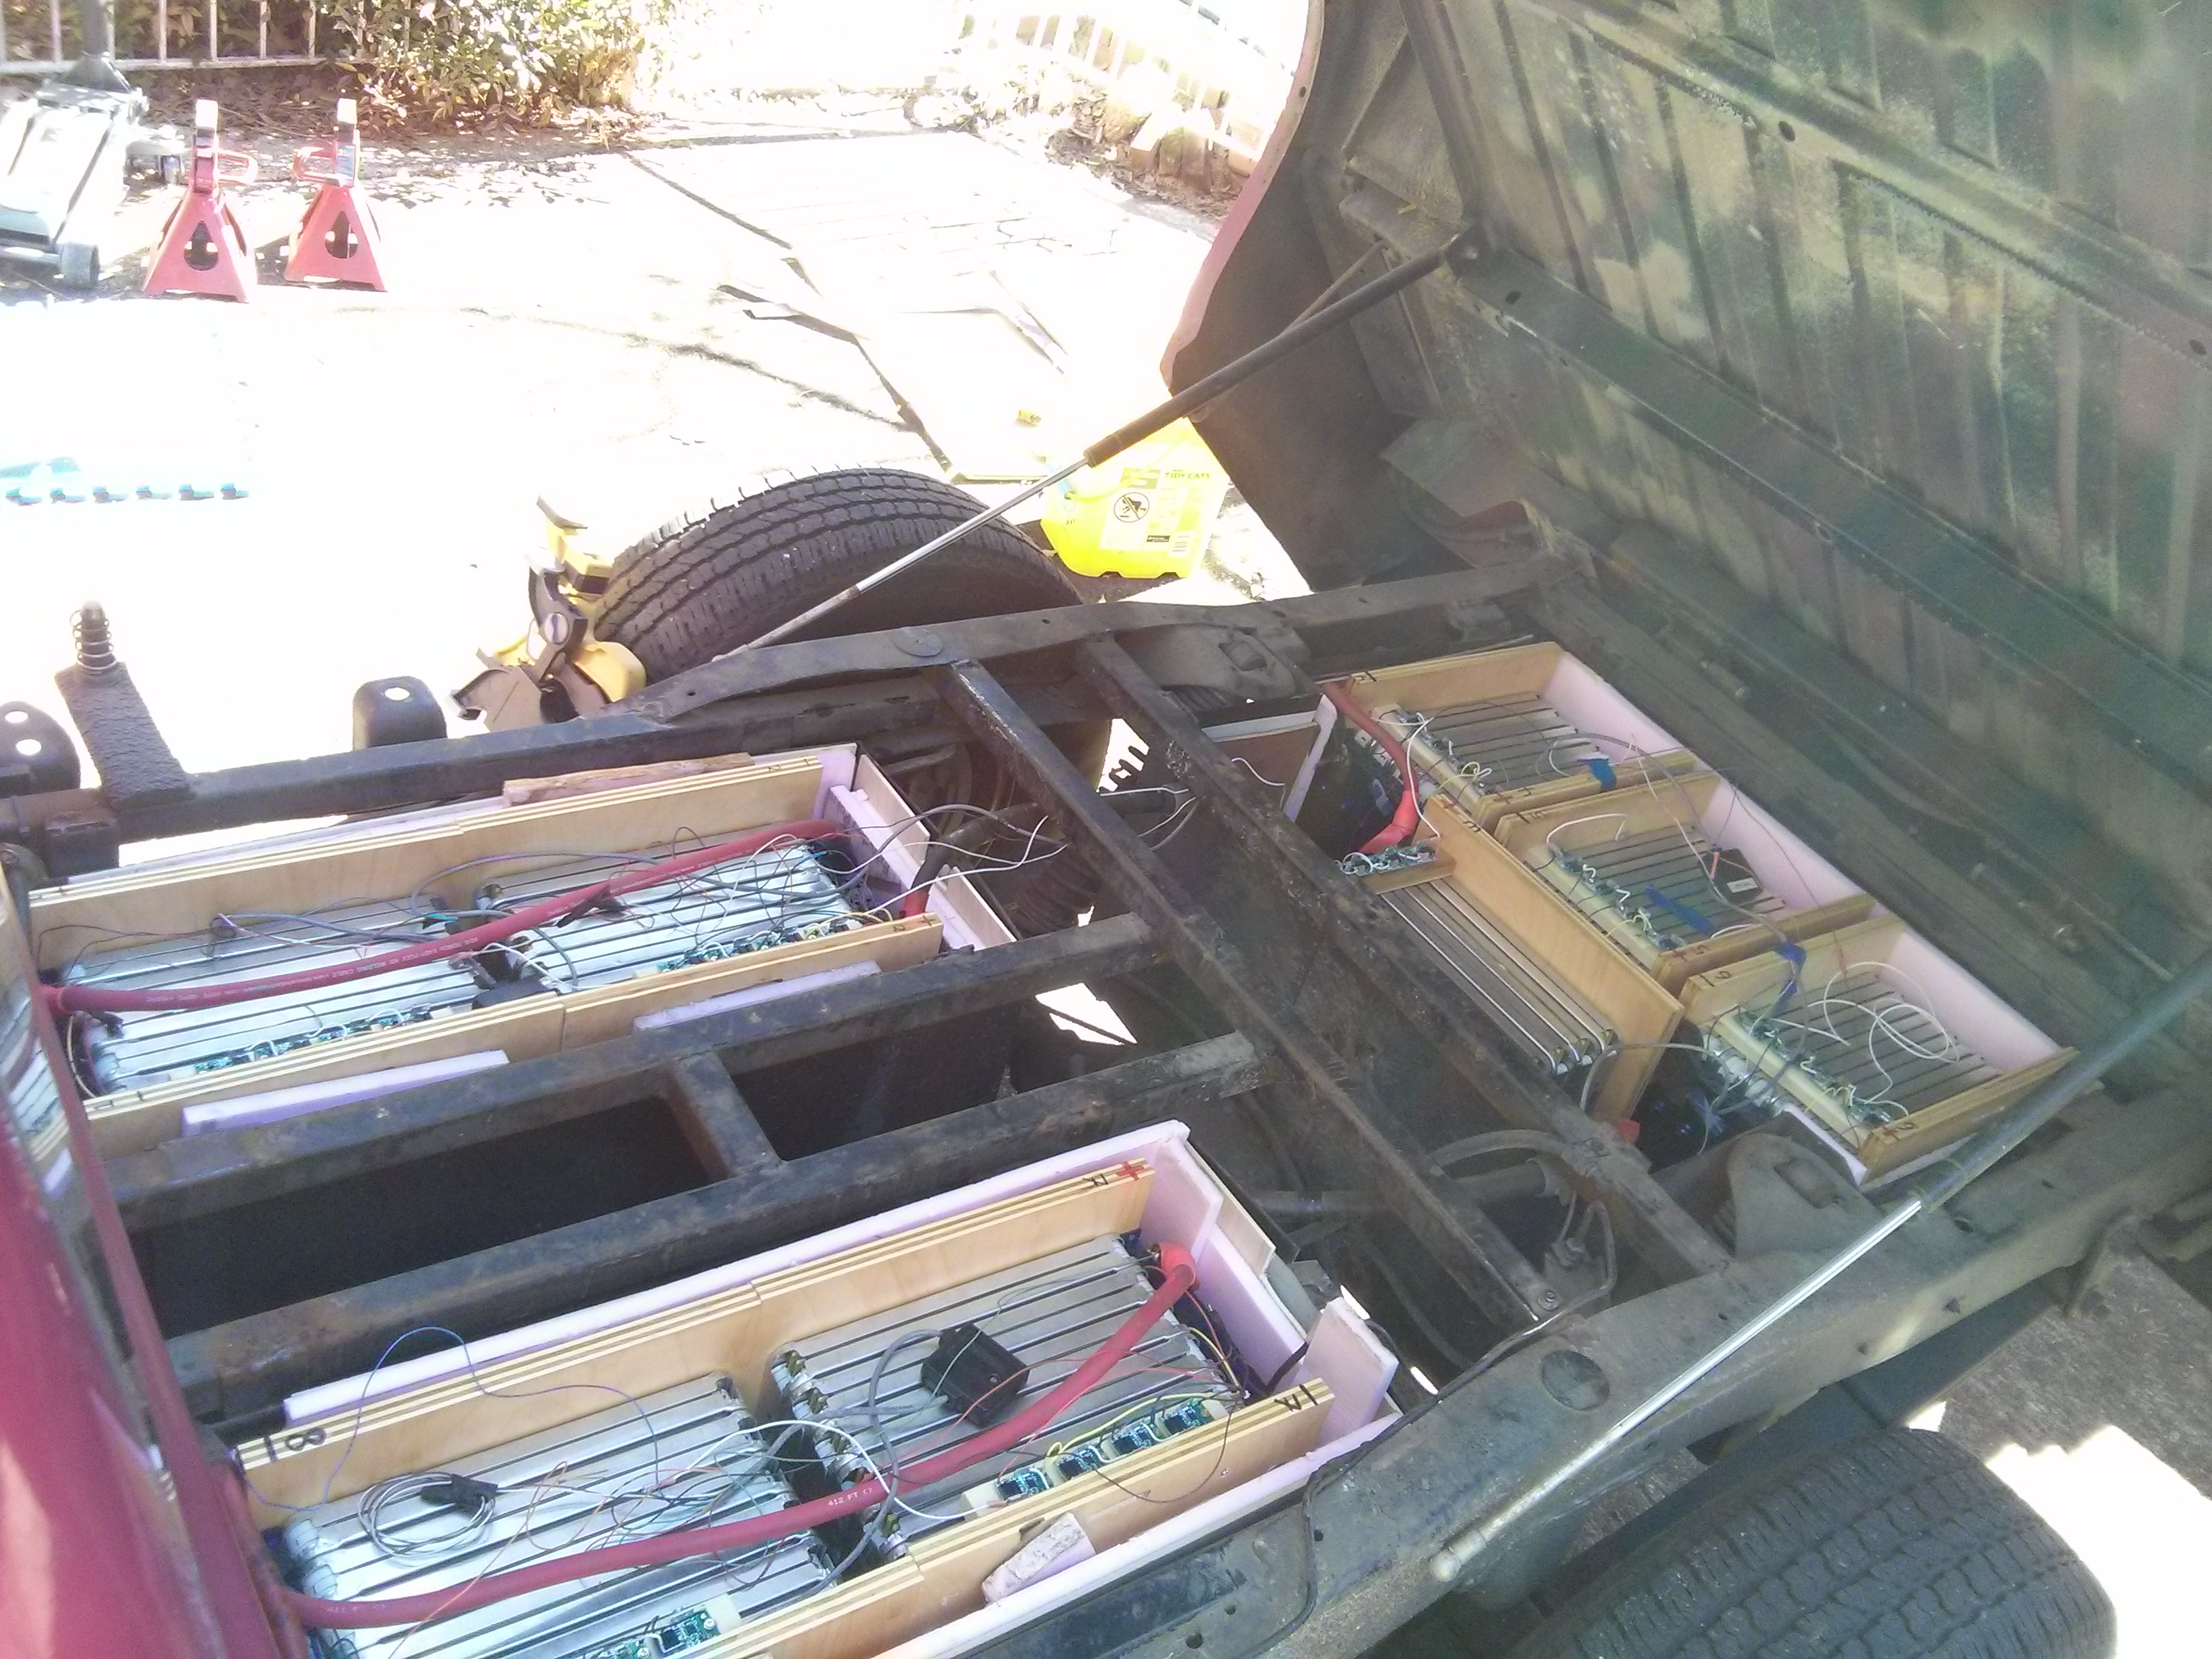 From A Salvaged Nissan Leaf Battery Pack I Have Them Wired In Series 16 Sets Of 3 Parallel Modules Providing 128 Volts With 180ah Capacity 23 Kwh